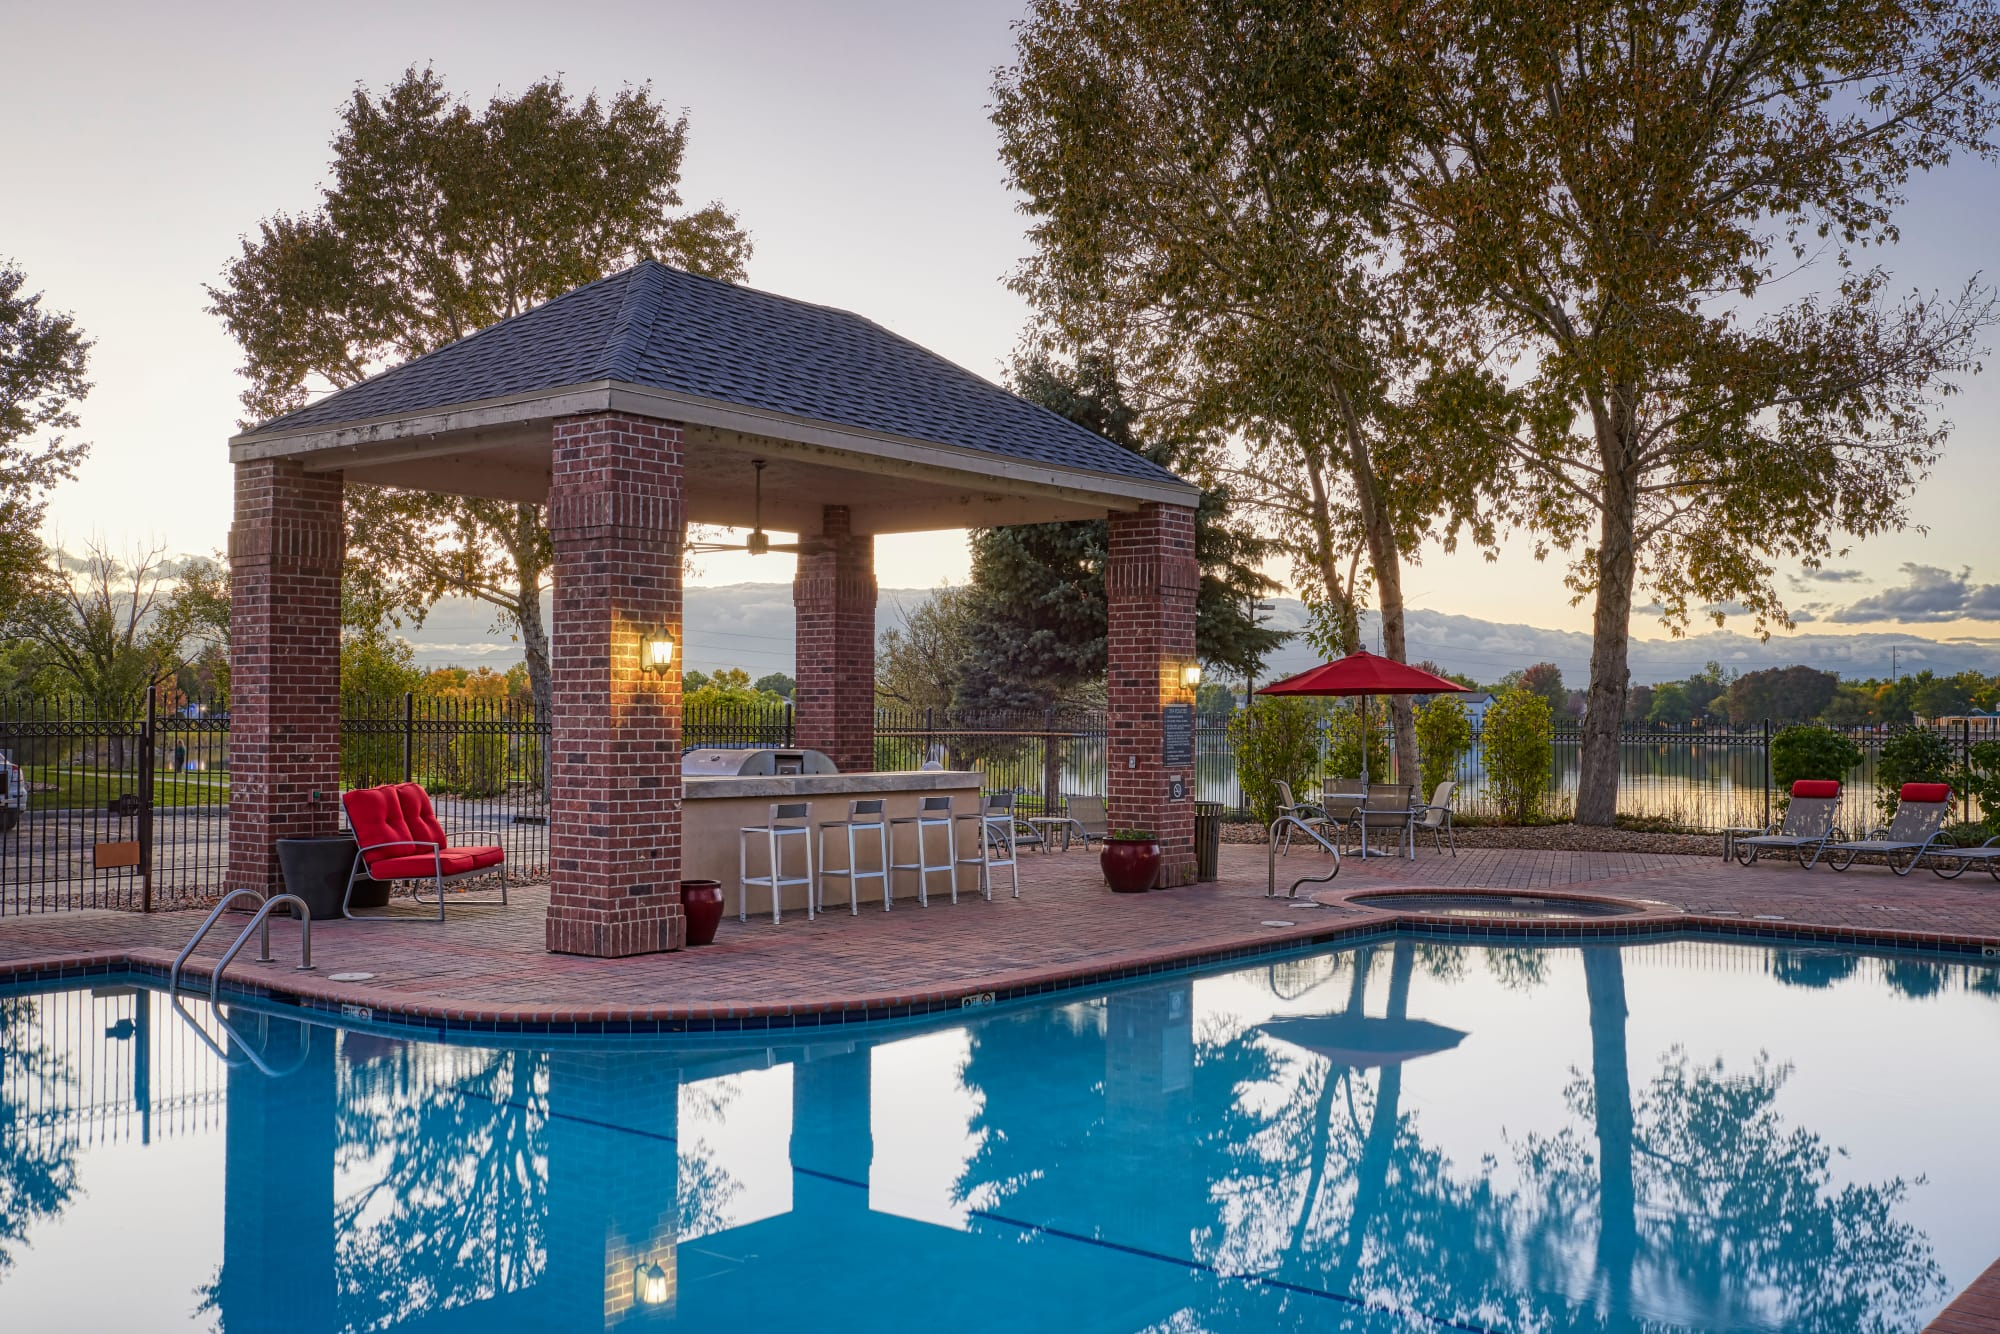 Poolside covered BBQ area at sunset at Promenade at Hunter's Glen Apartments in Thornton, Colorado